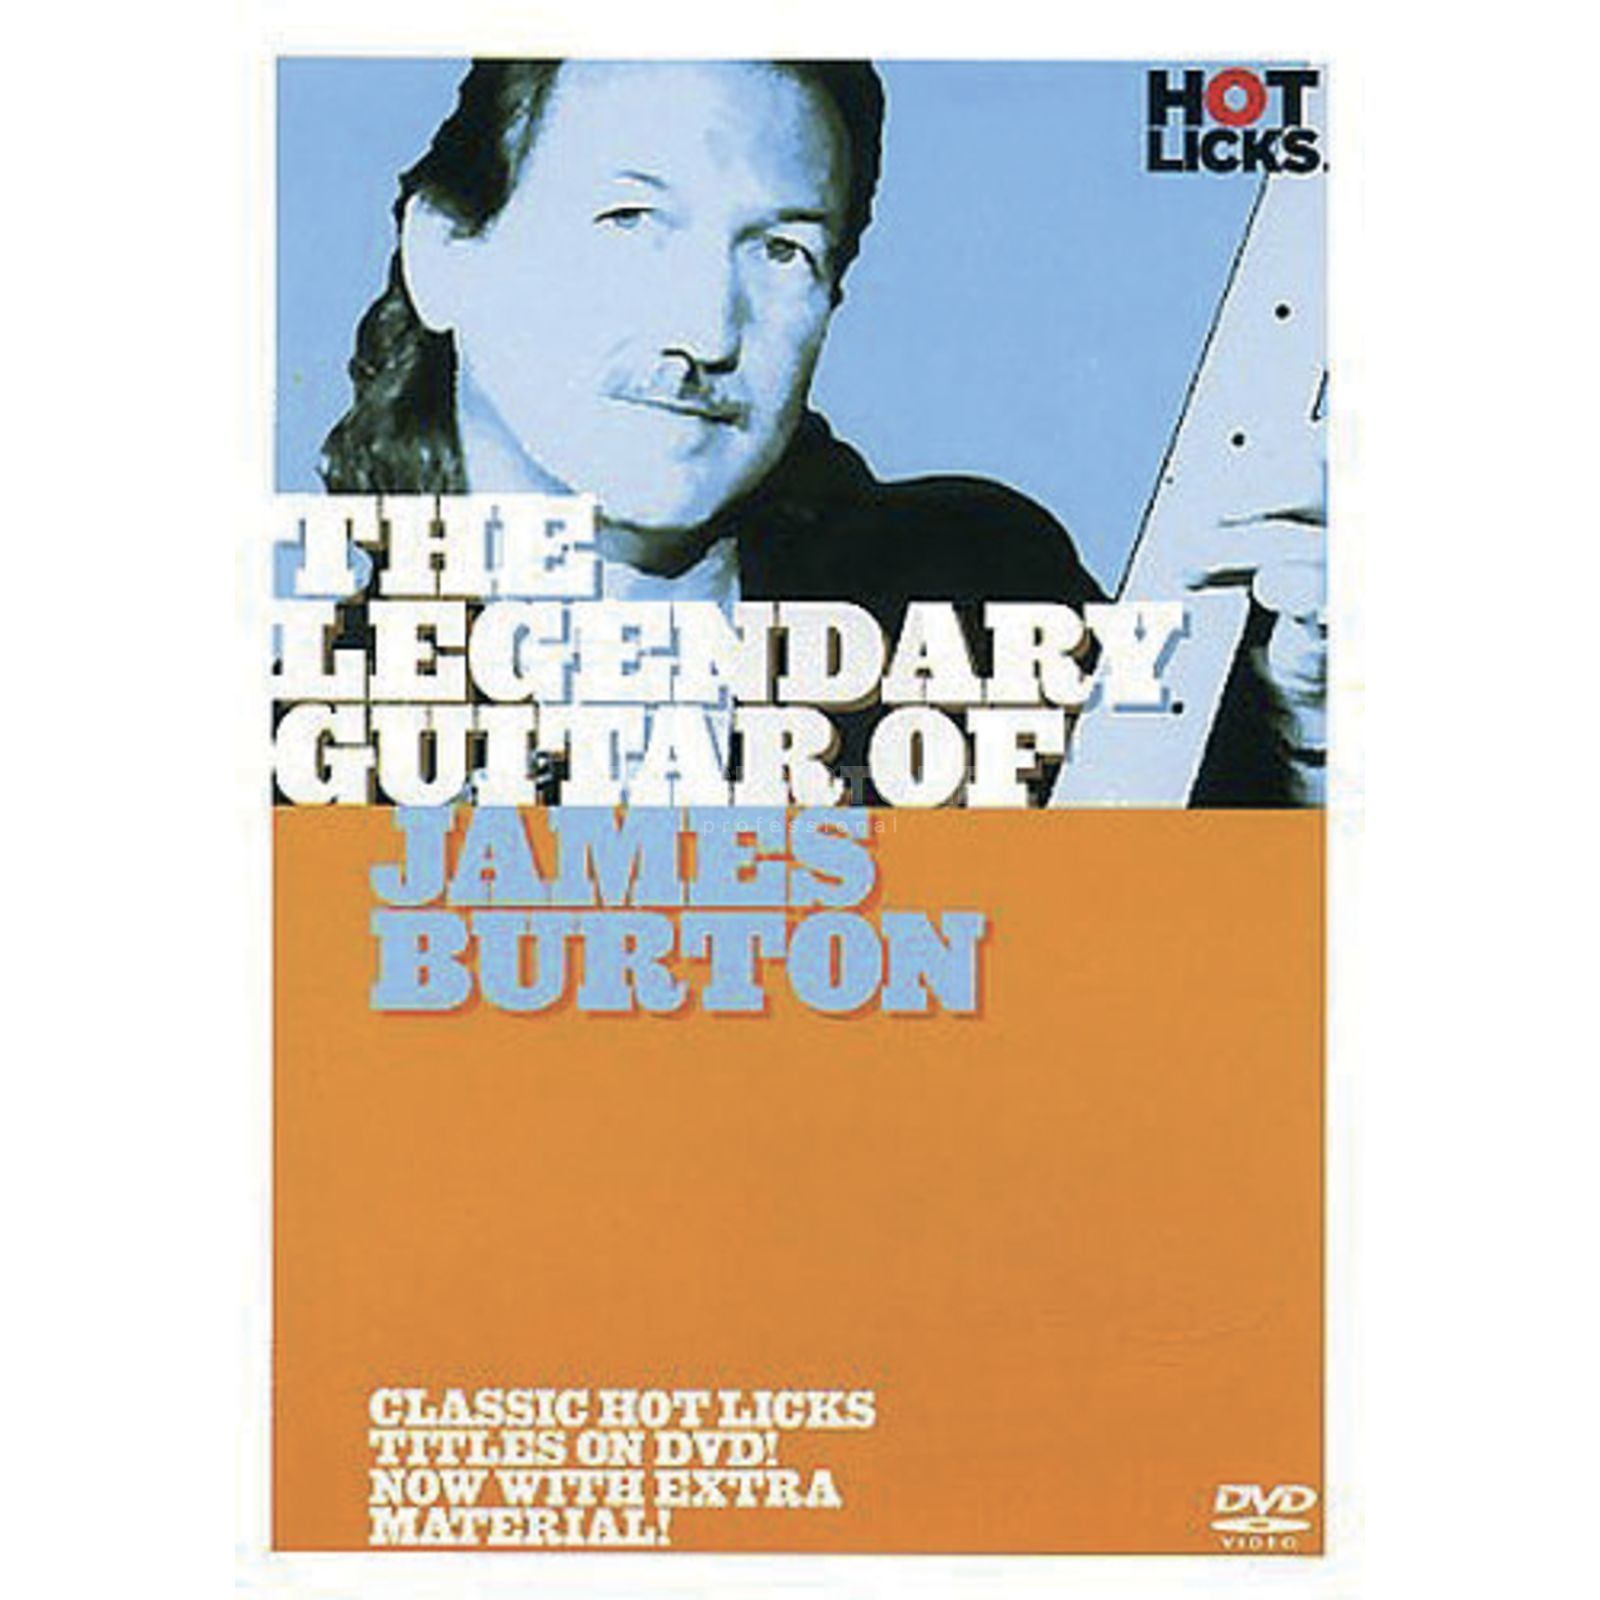 Hotlicks Videos James Burton - Legendary Guitar, Hot Licks, DVD Produktbild